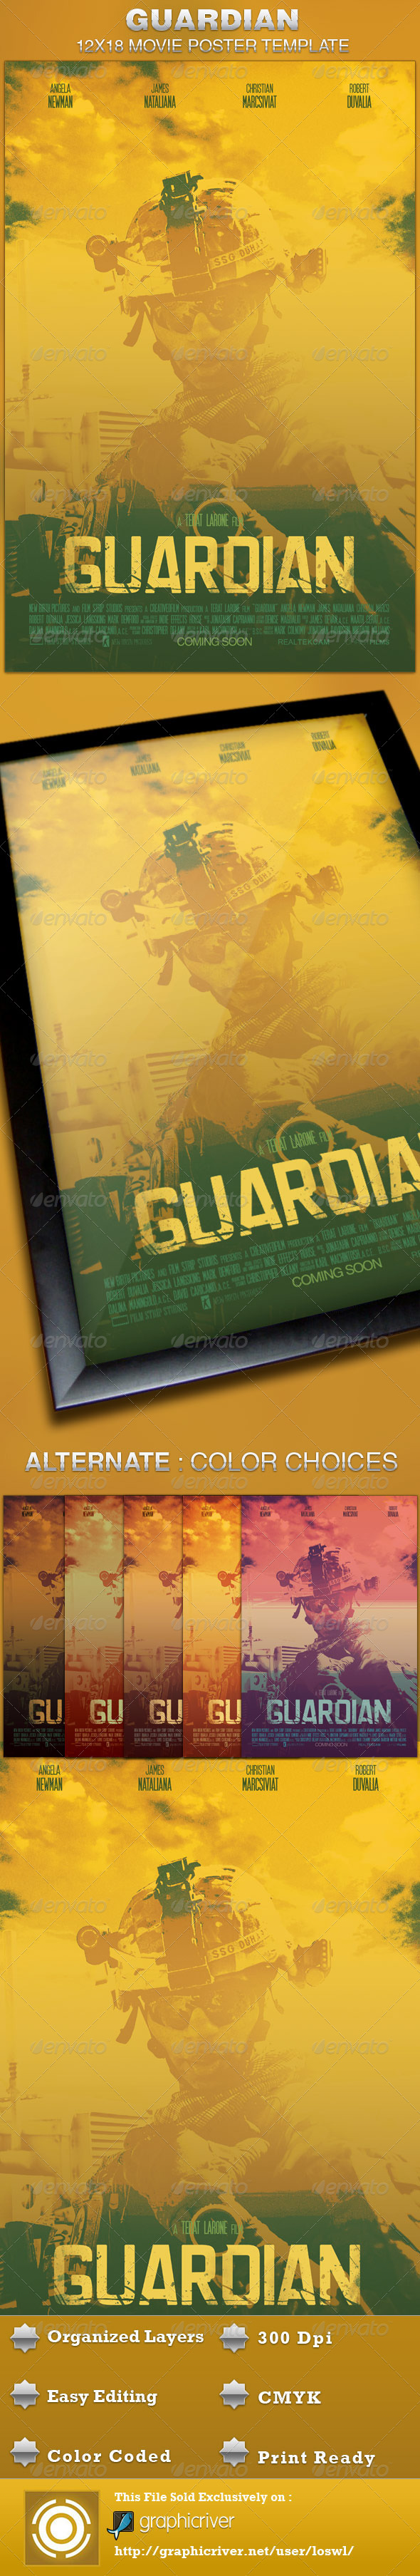 Guardian Movie Poster Template - Church Flyers